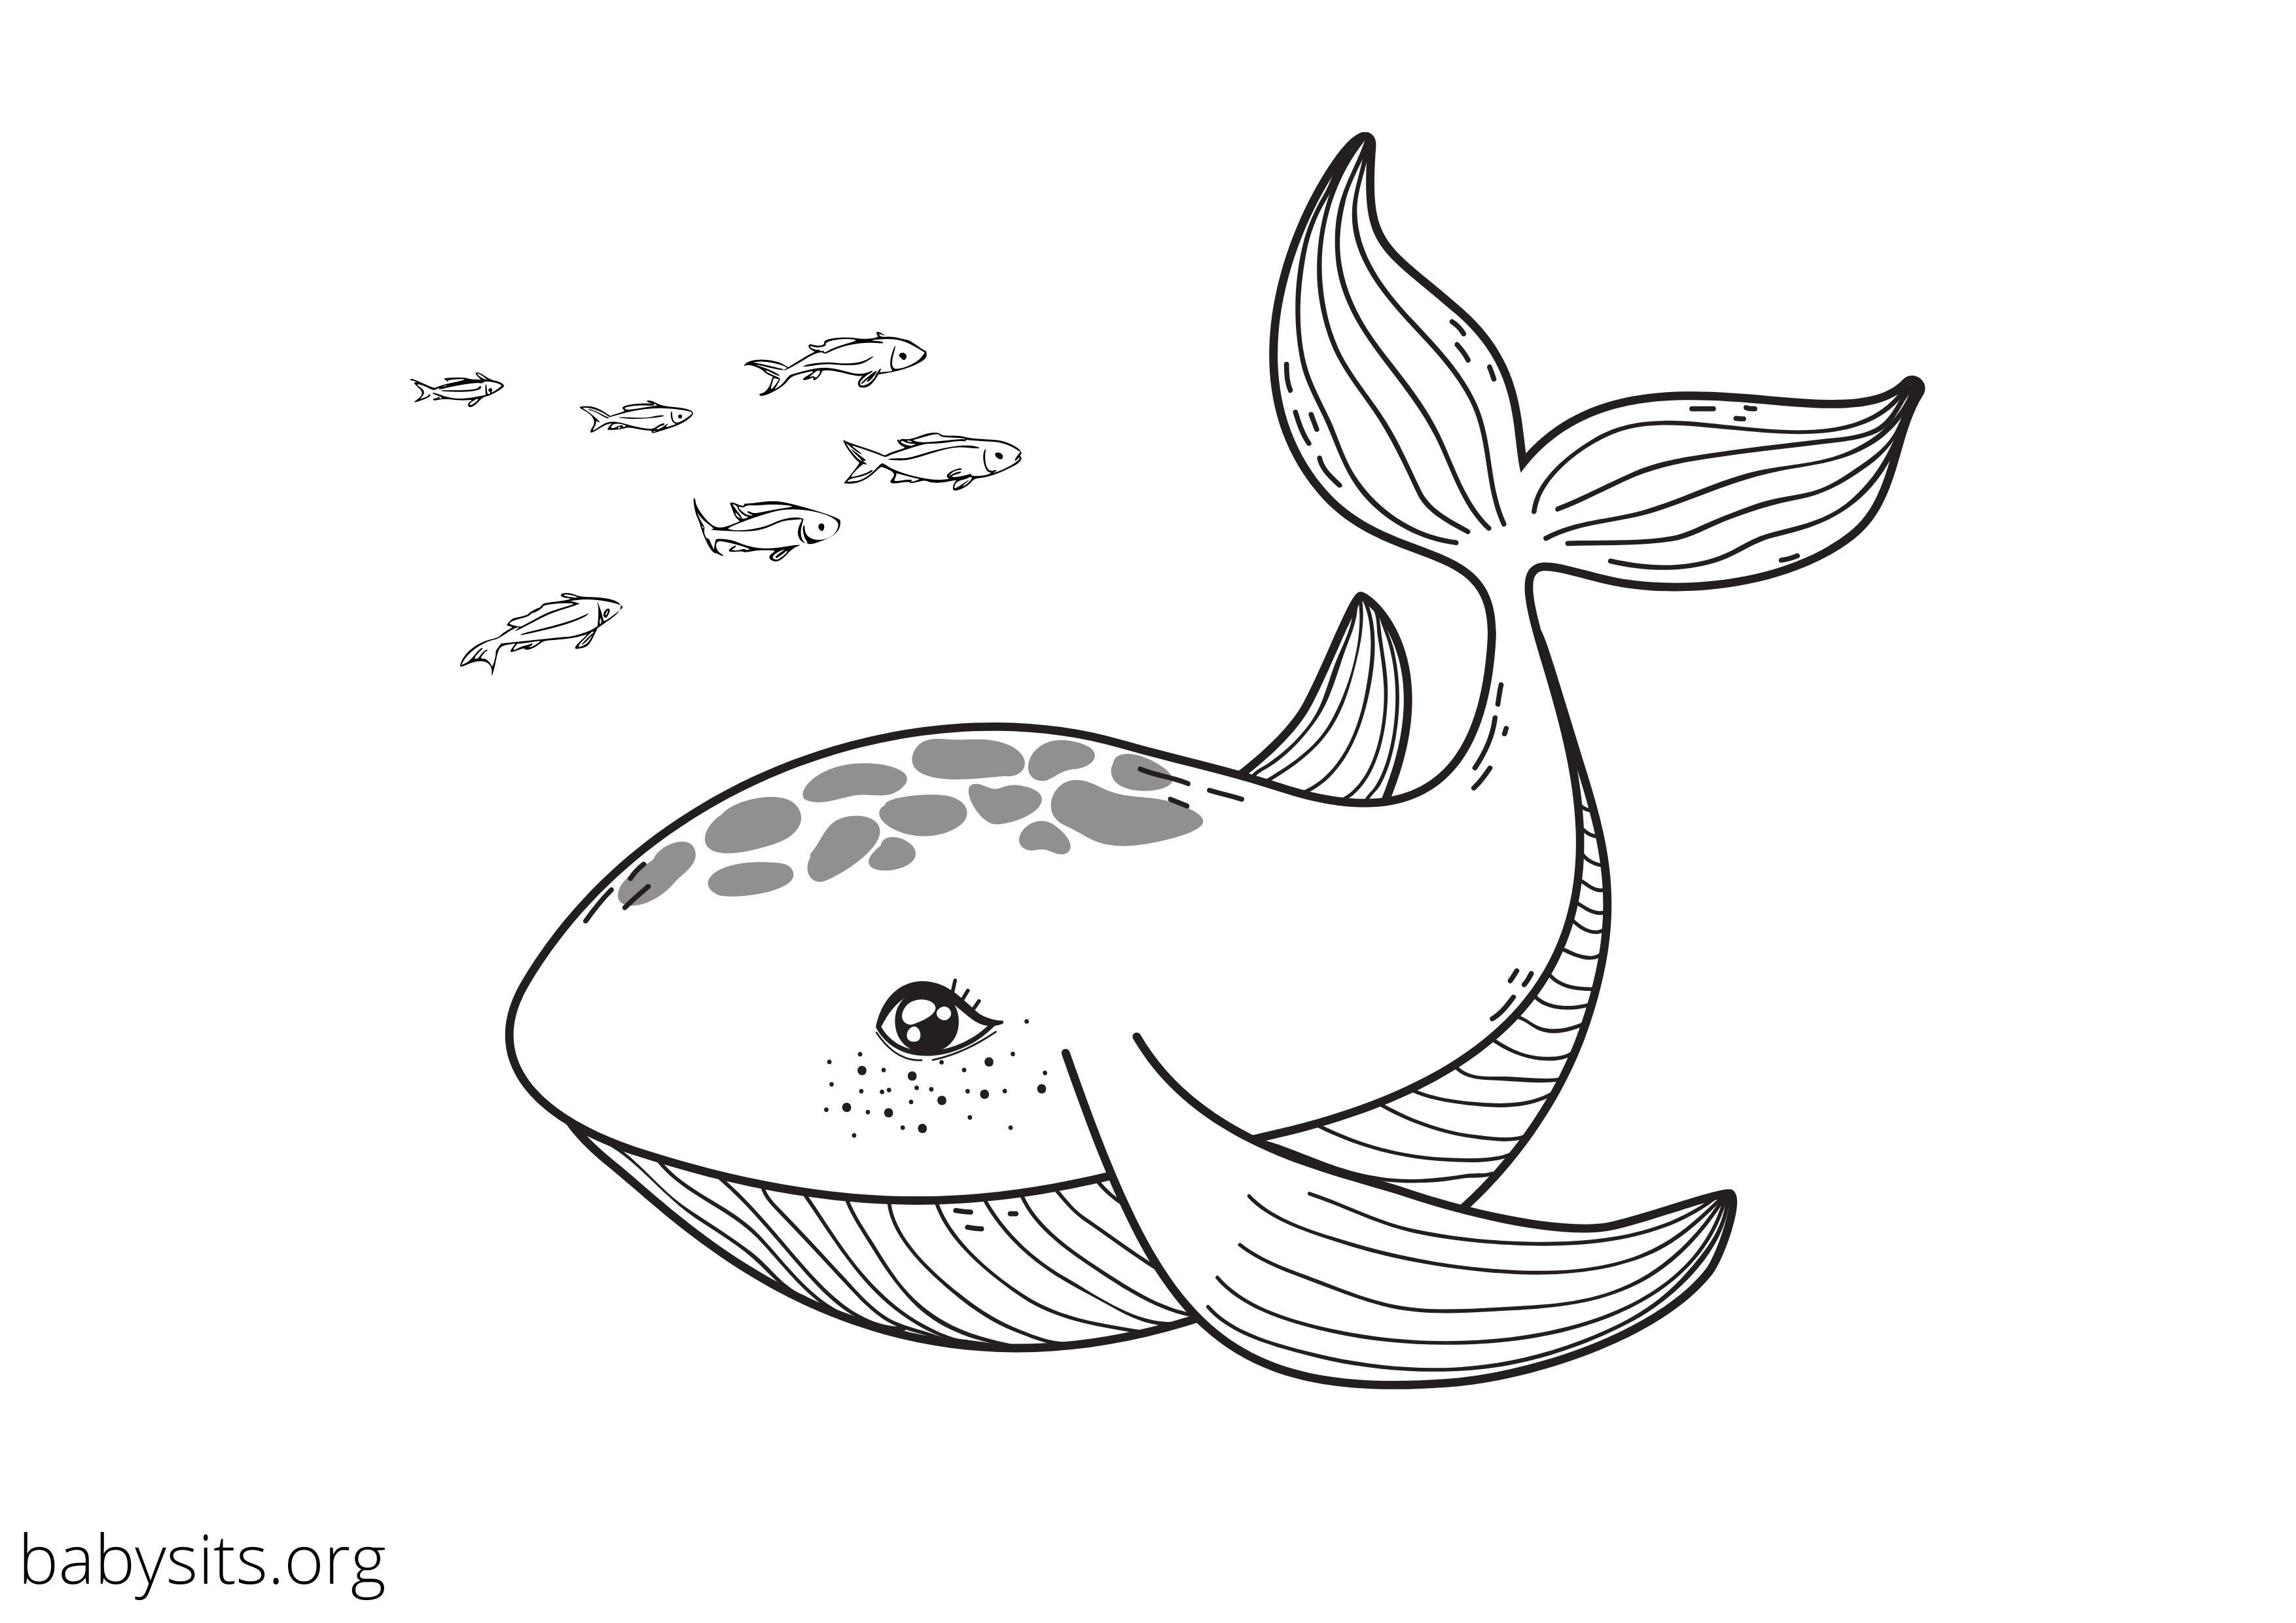 Whale colouring page